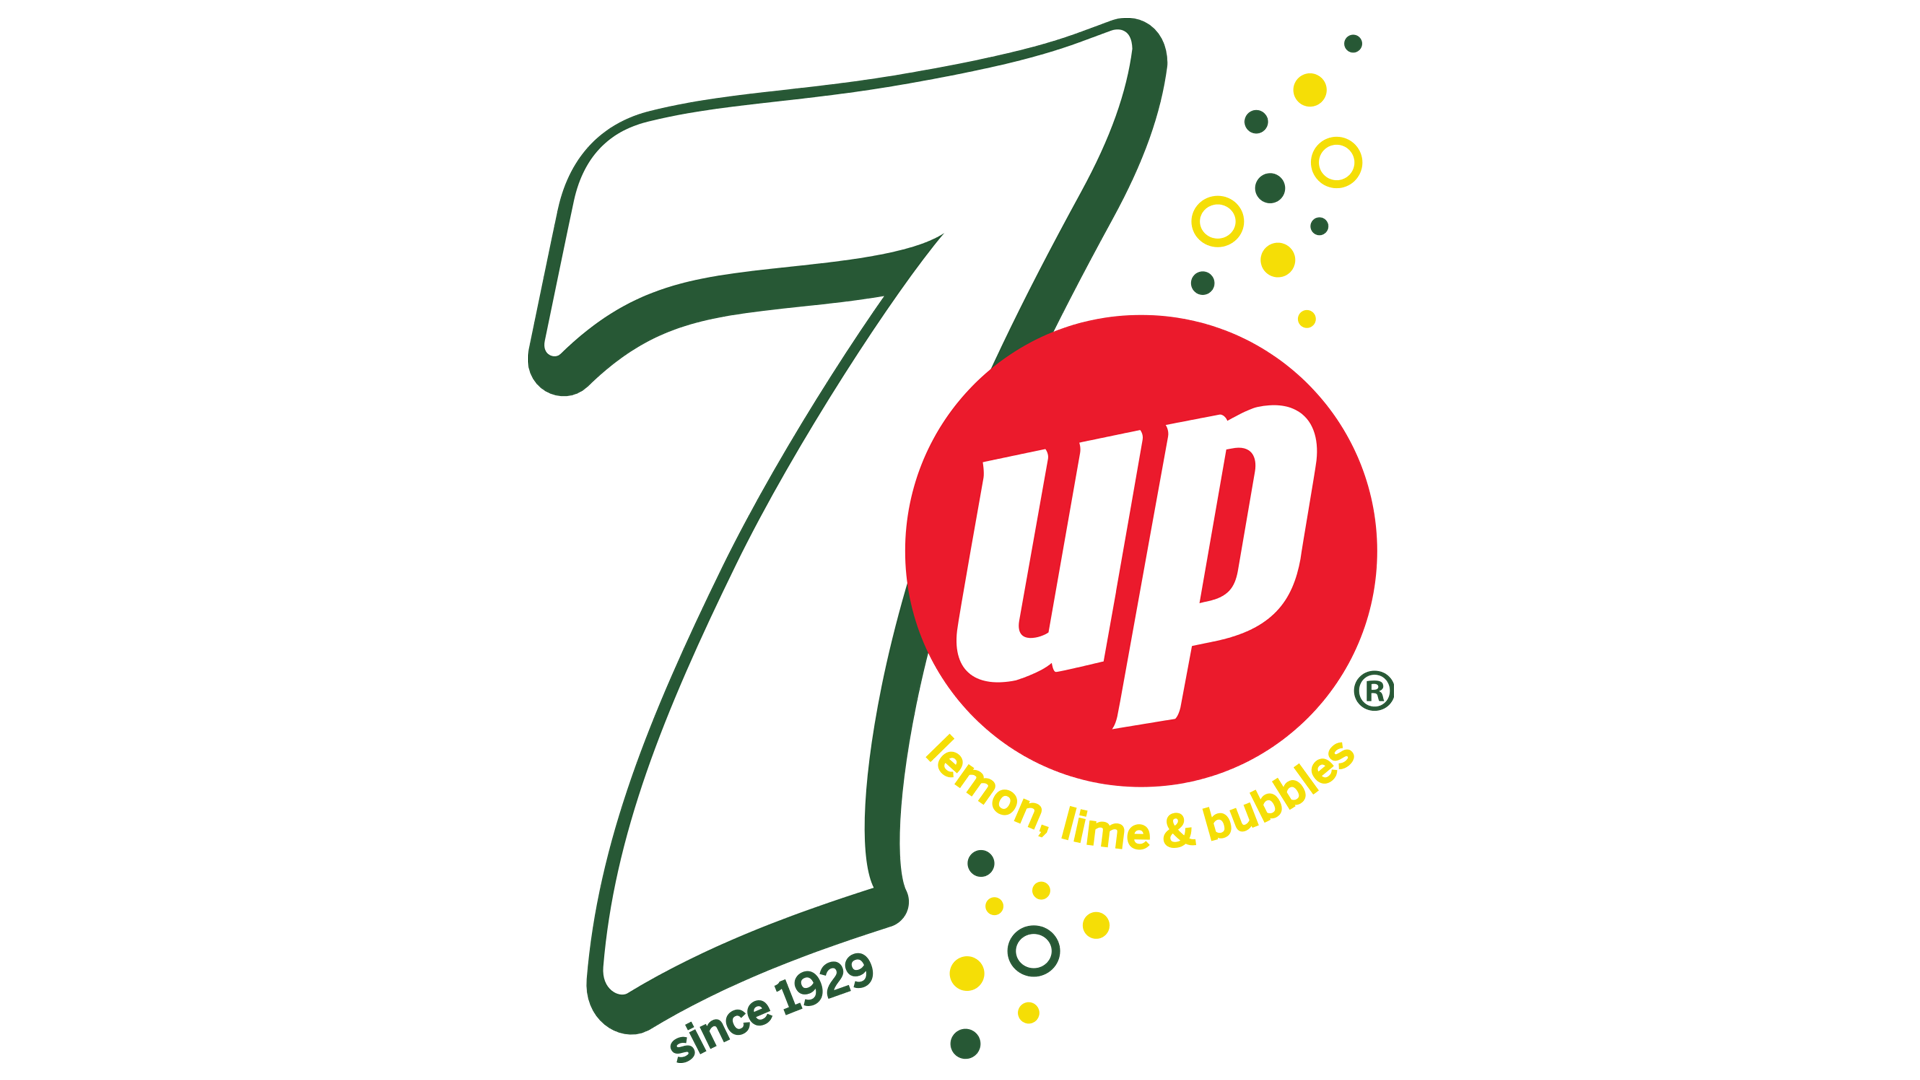 7up logo 7up symbol meaning history and evolution rh 1000logos net soft drink logo red circle soft drink logos and names